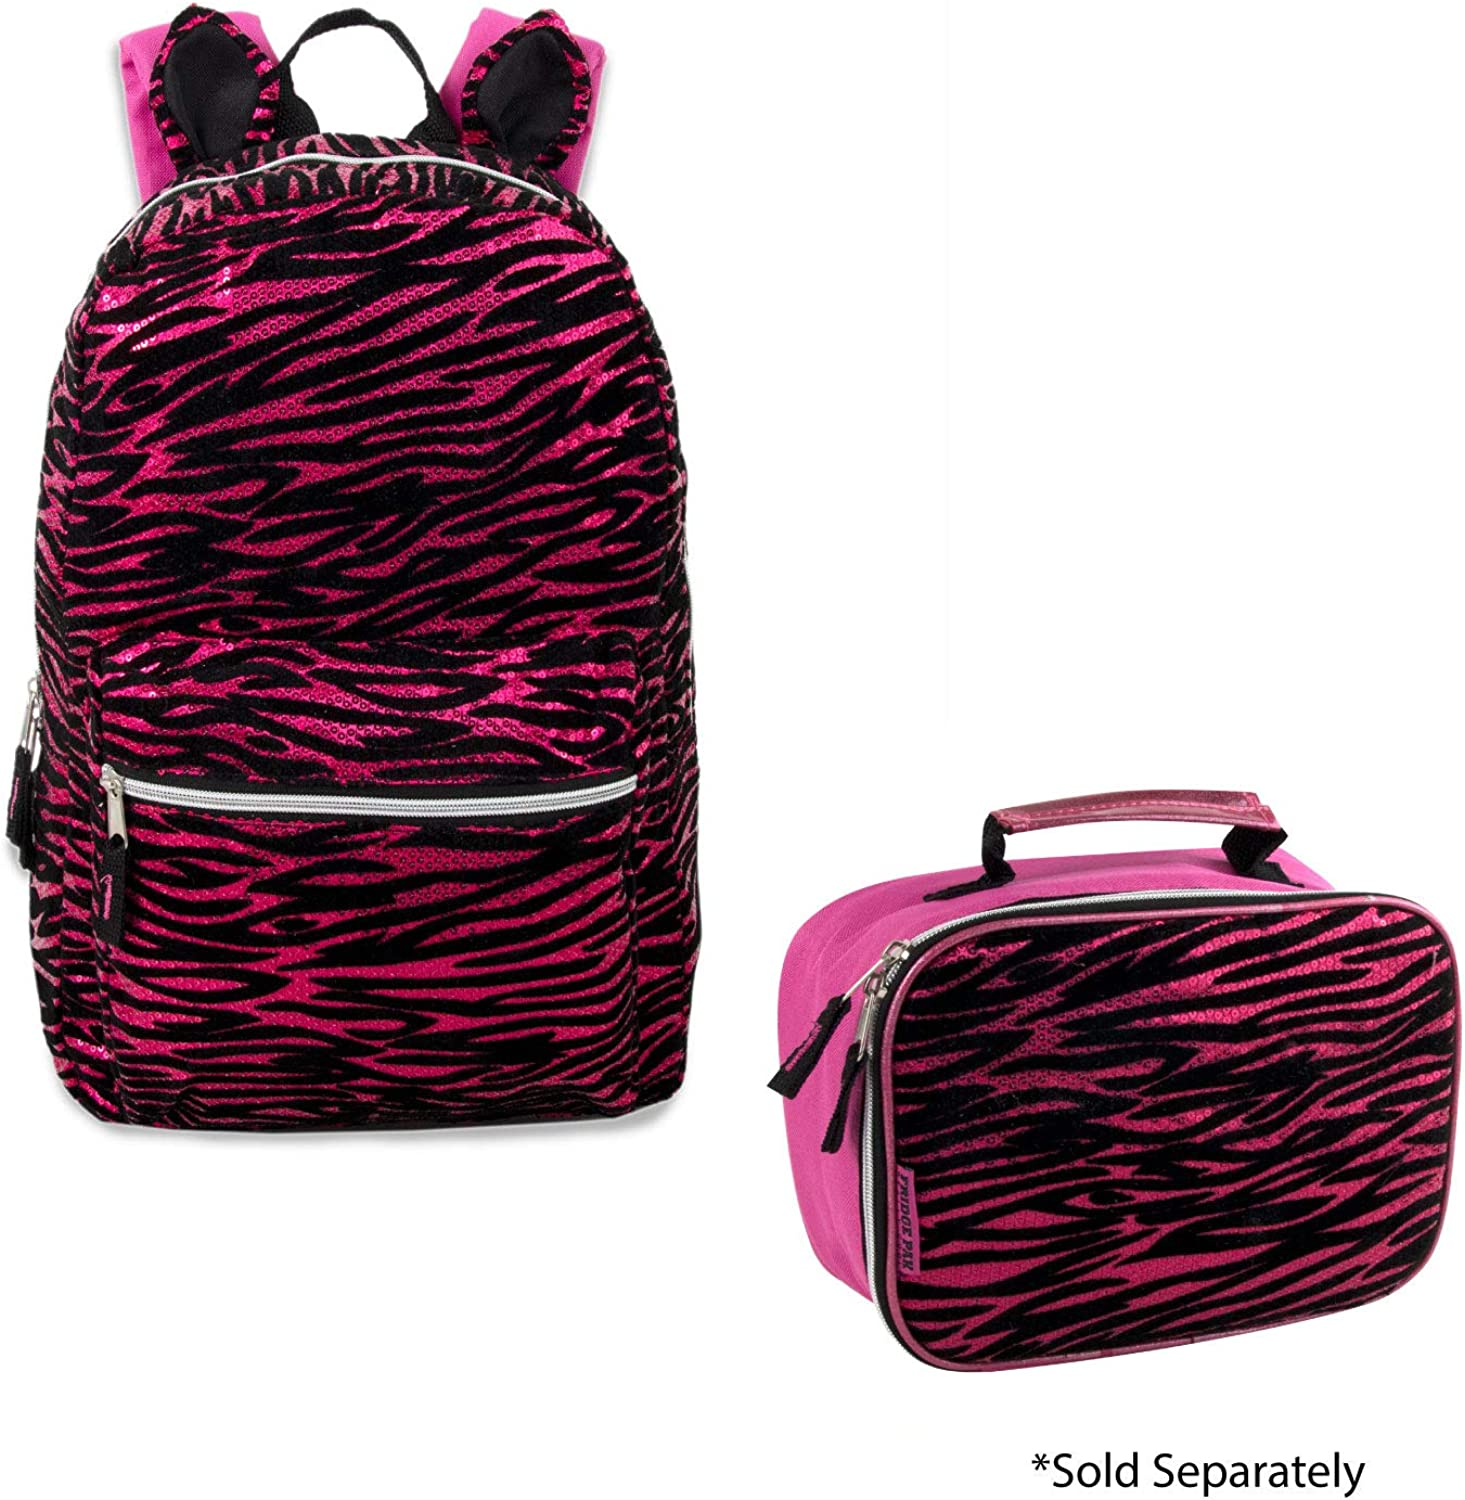 Cat Ear Animal Backpack with Ears Pink Sequin Zebra Backpack for Kids